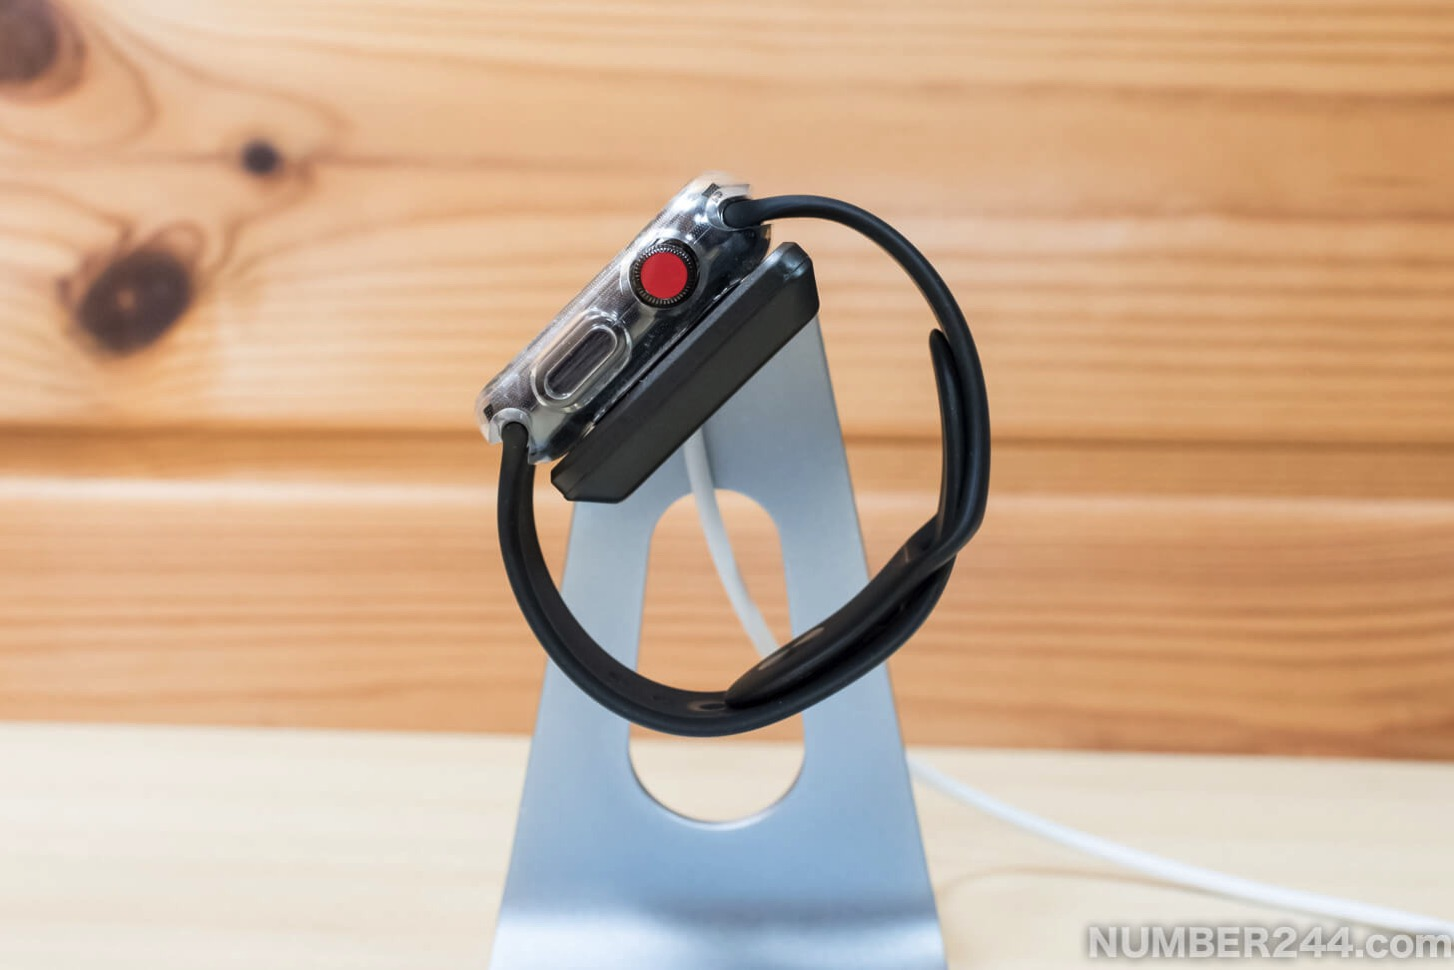 Moobom Apple Watch stand7